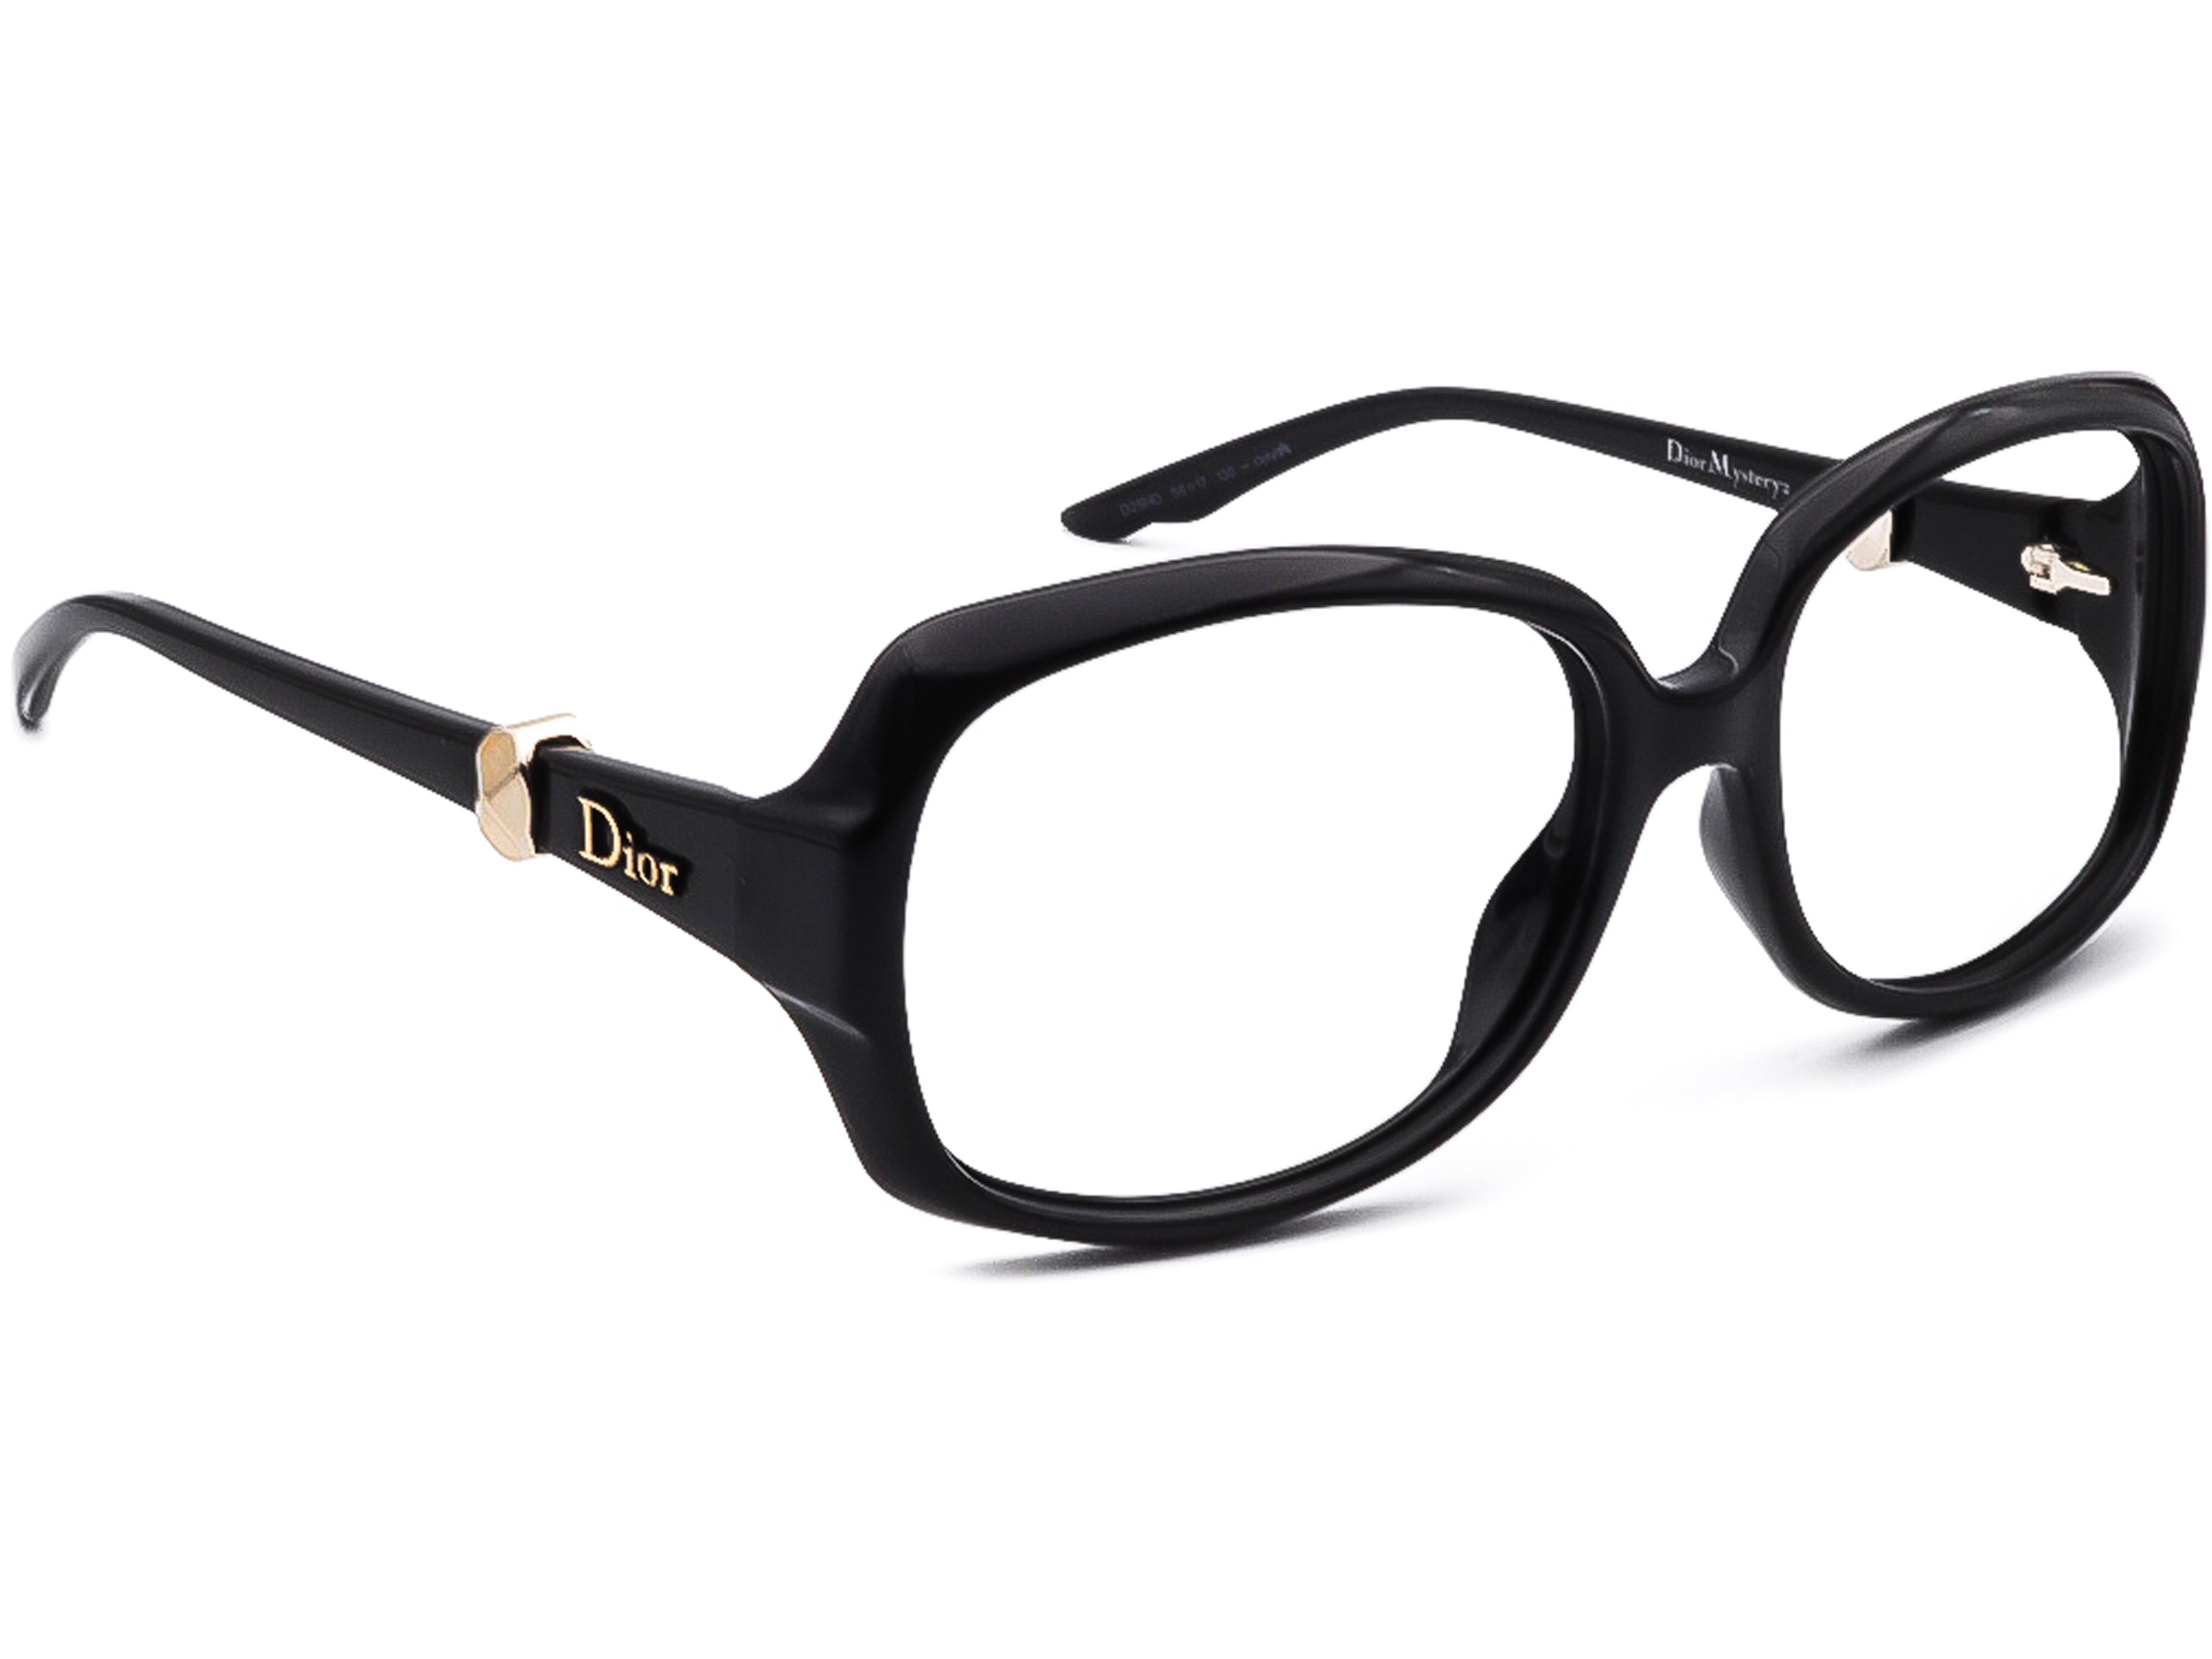 Dior D28HD MLV02BS11P Sunglasses Frame Only